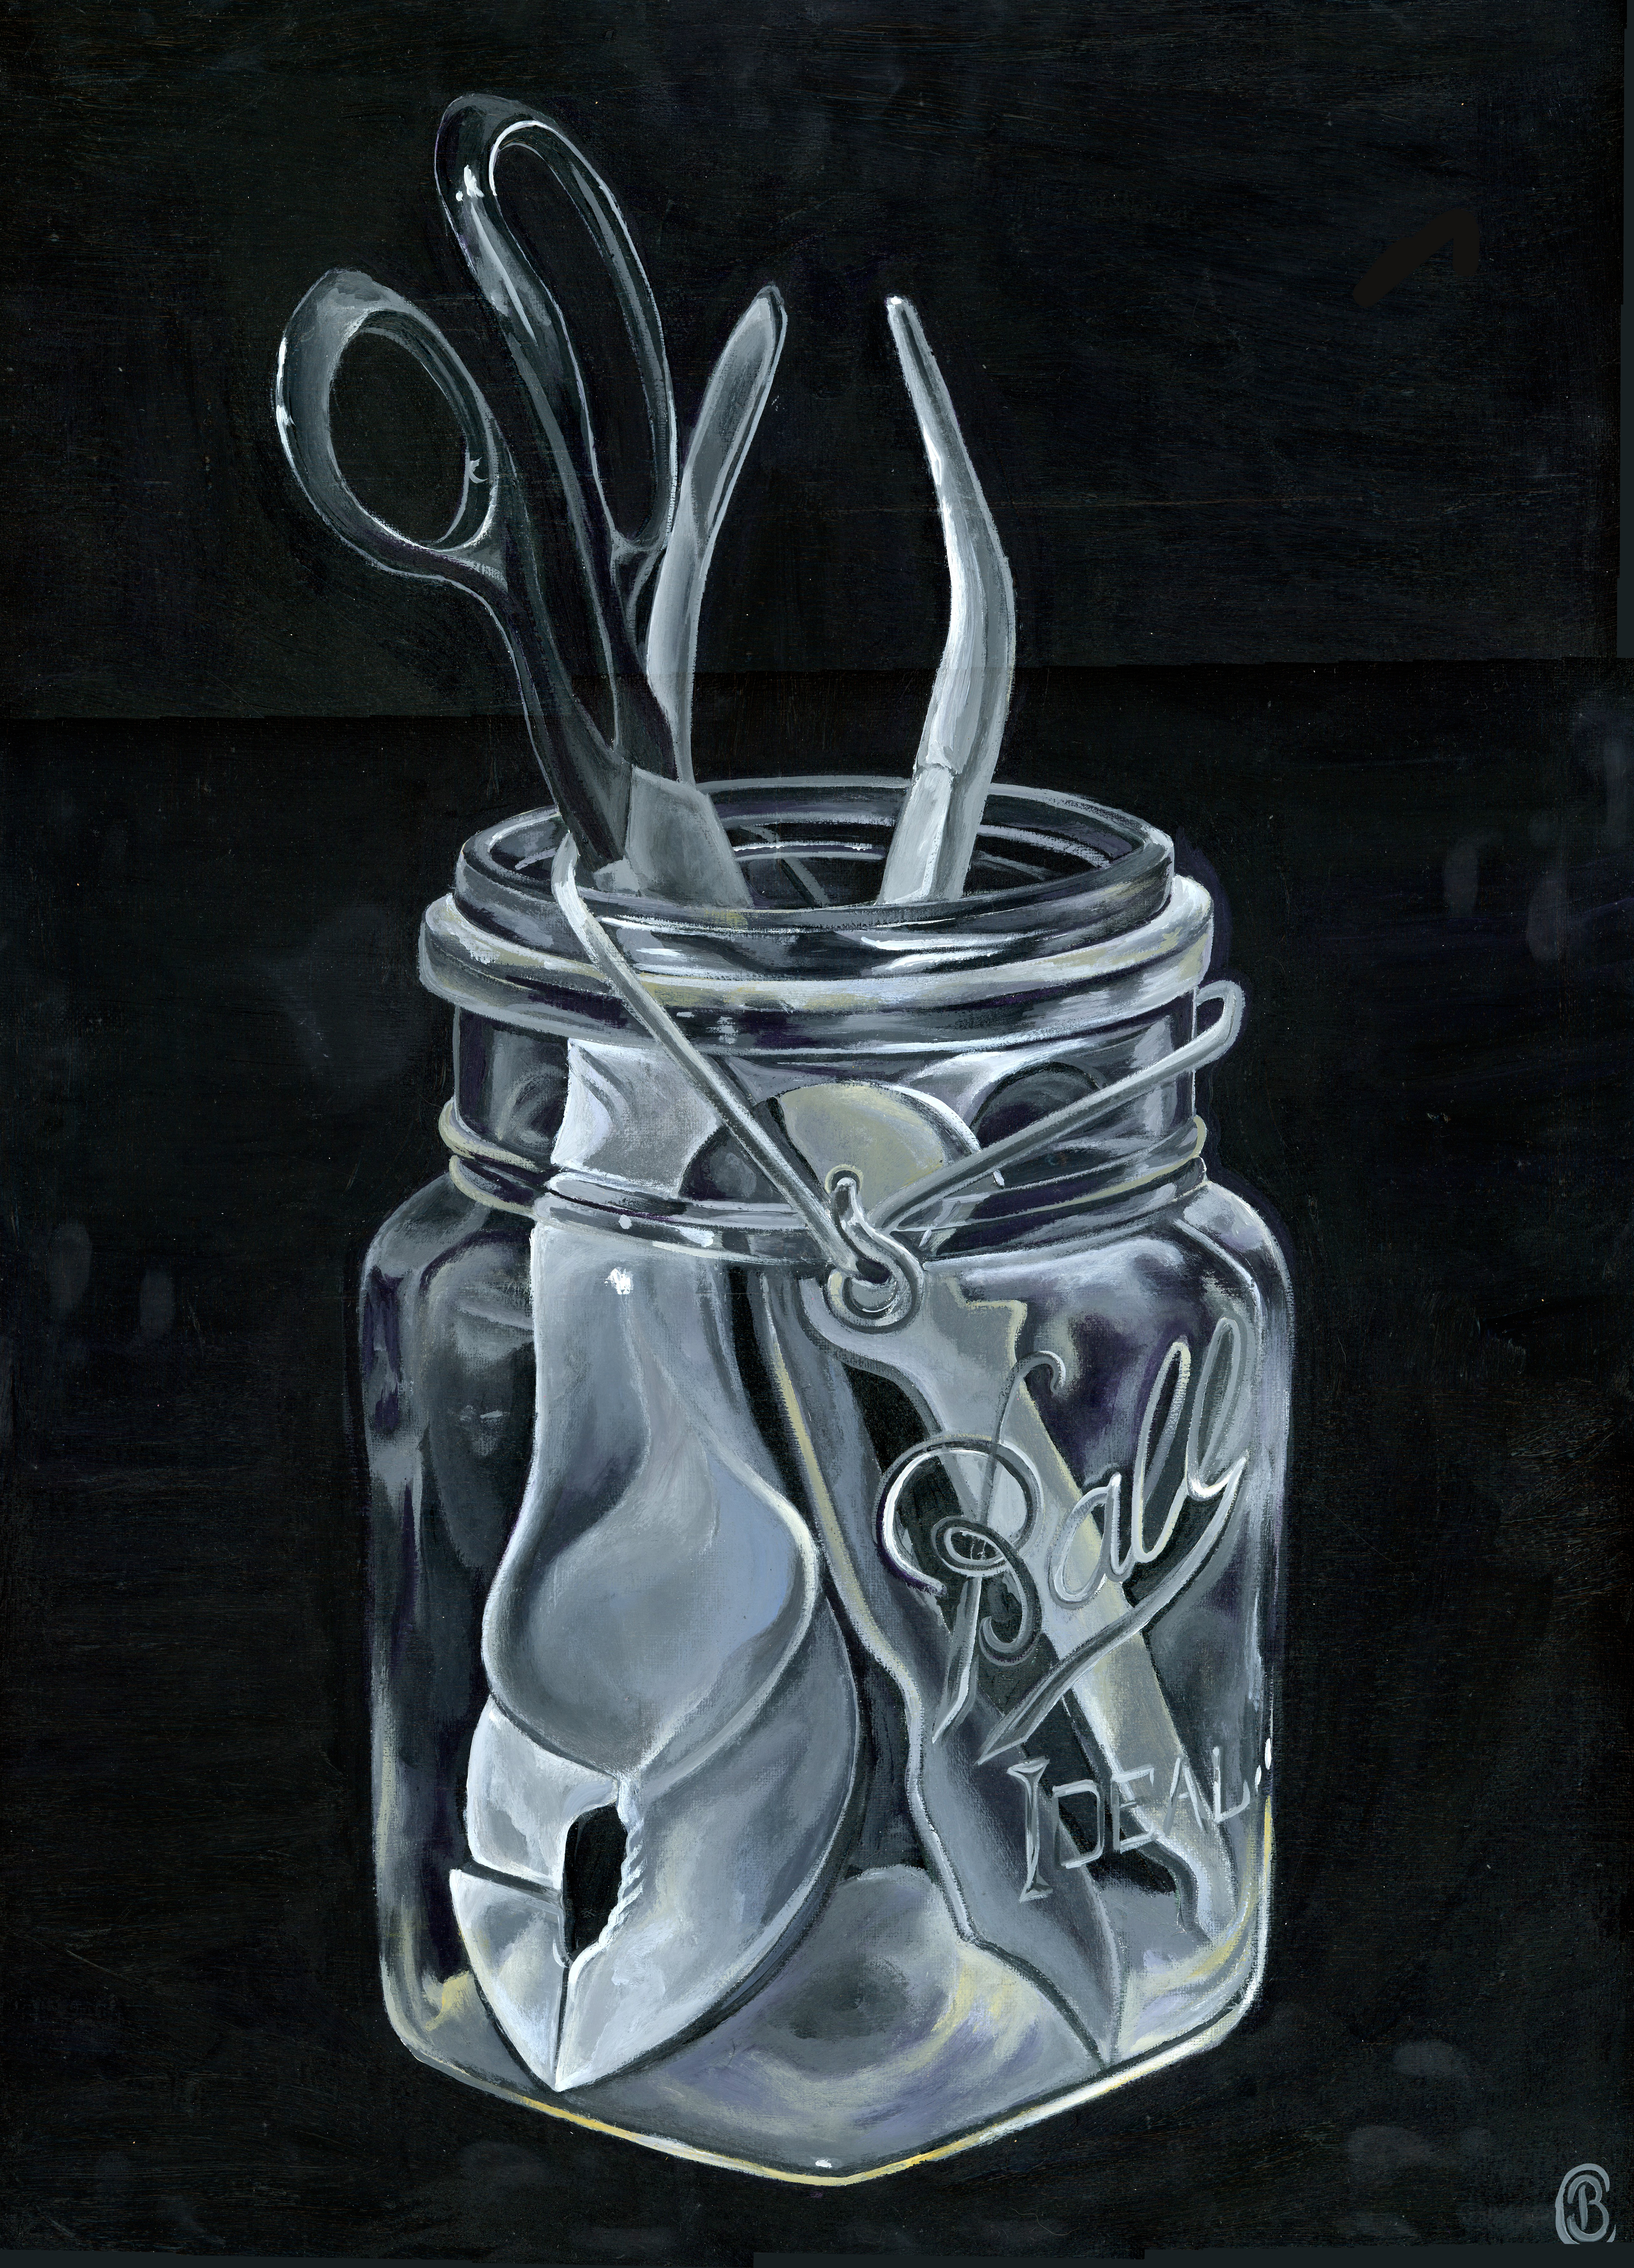 Mason Jar with Tools